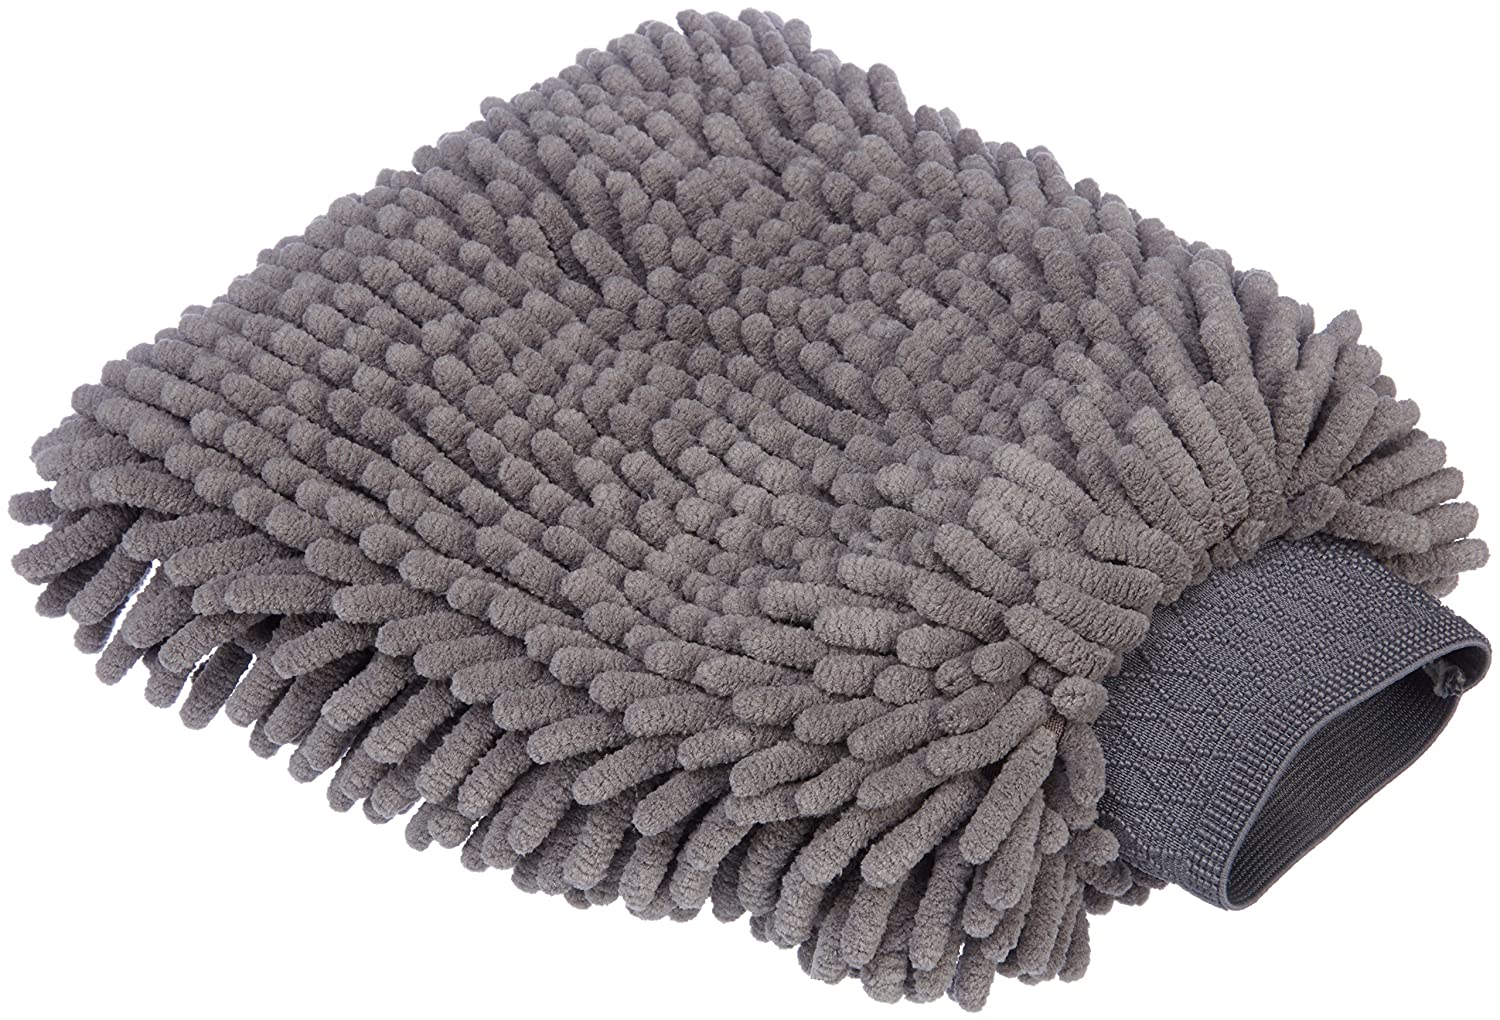 10 Of The Best Car Wash Mitts Reviewed in 2019 10 Of The ...